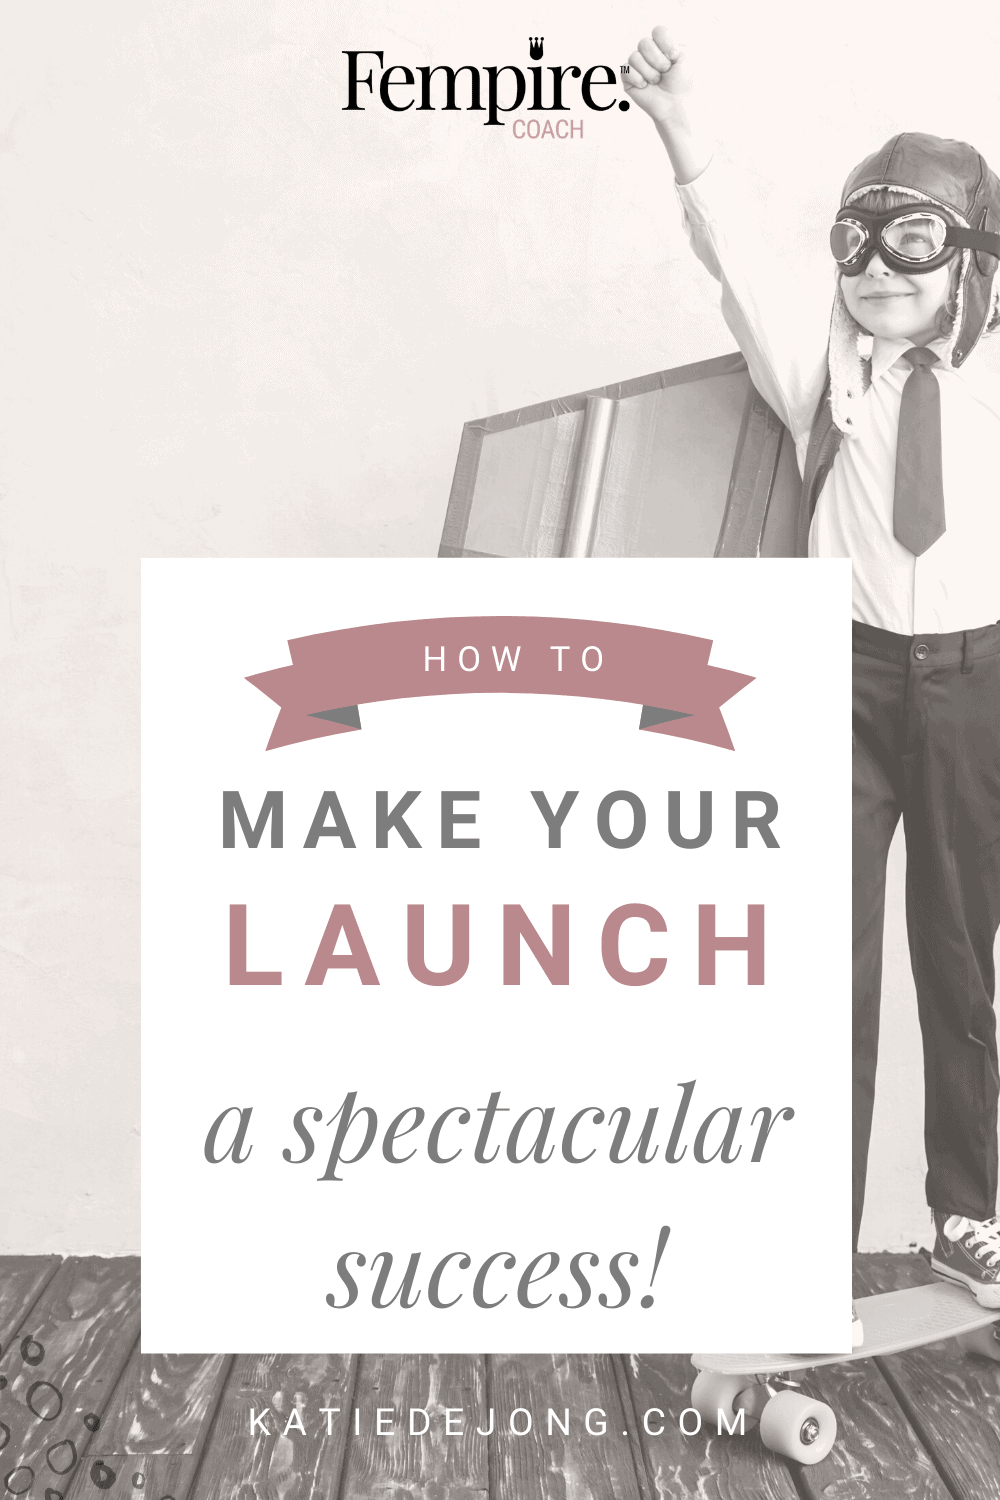 Have you been guilty of putting your offerings out to the market without a comprehensive launch strategy, and then you wonder why no one is buying? Discover the exact steps you need to take before you launch to make your launches spectacularly successful! #fempire #entrepreneur #launch #productlaunch #businesscoach #womeninbusiness #fempirecoach #launchformula #ladyboss